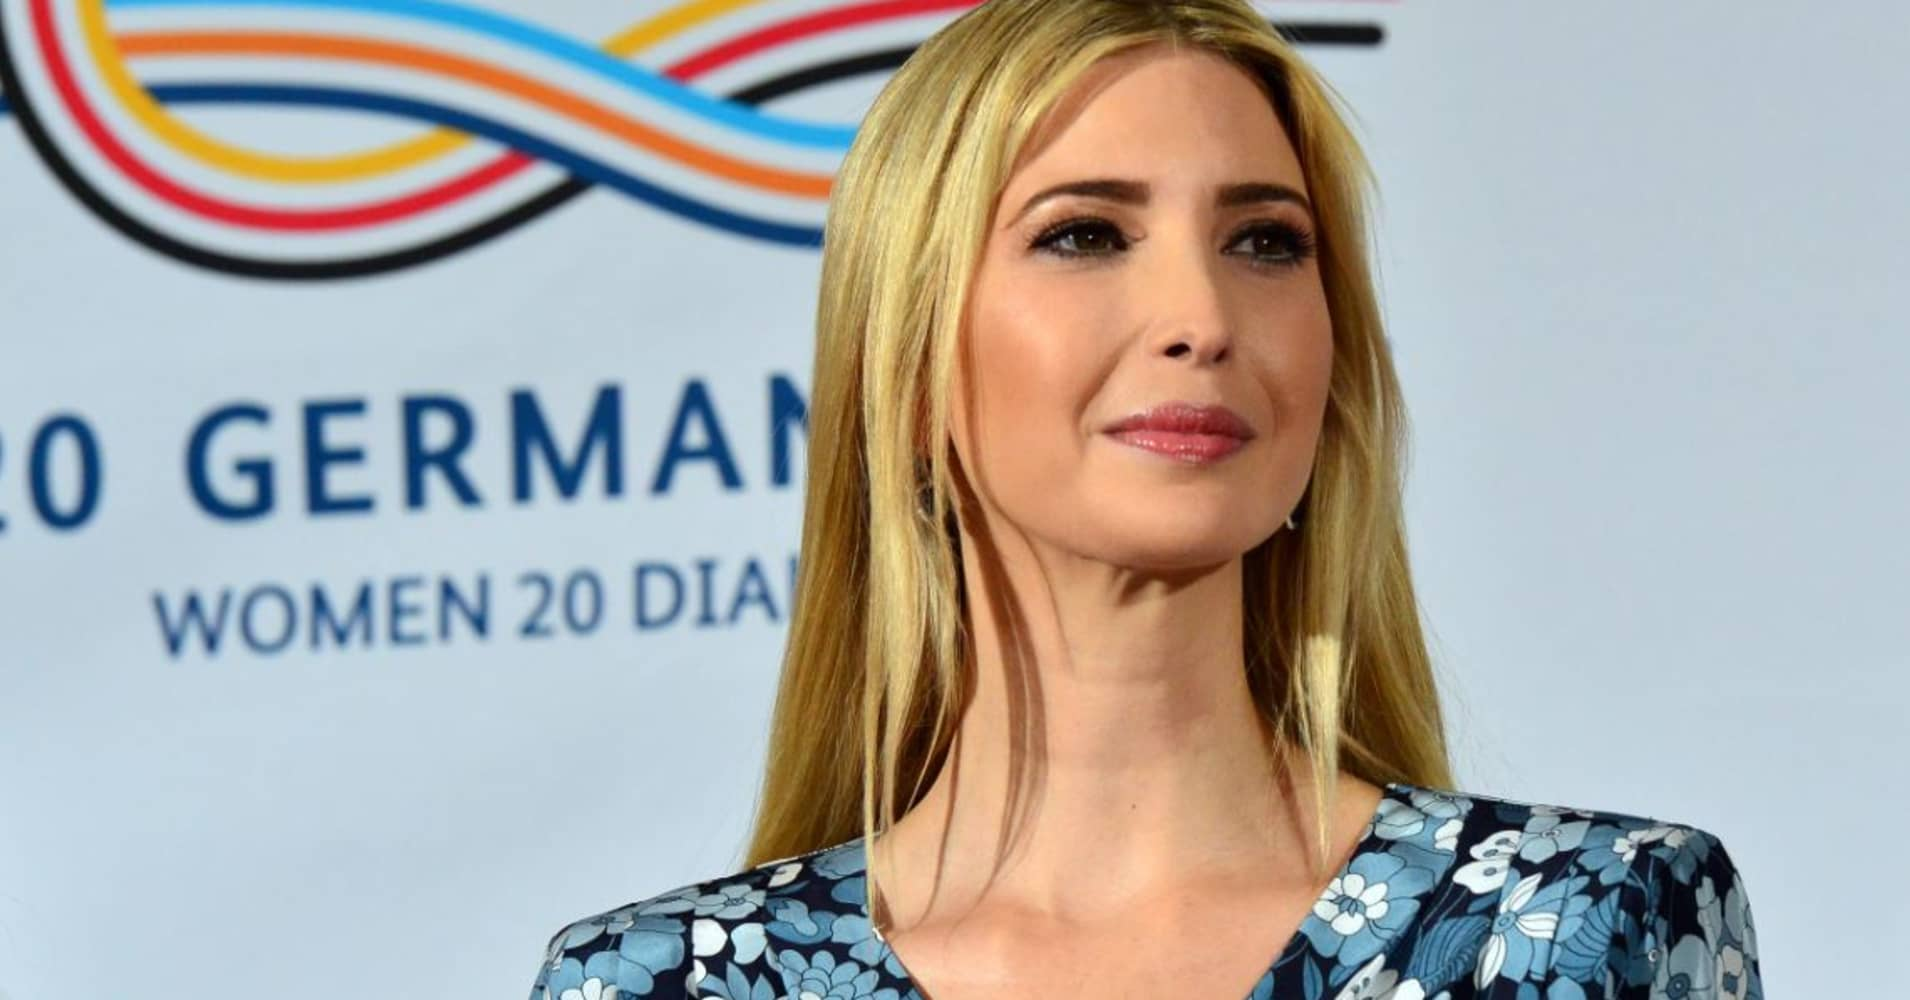 Ivanka Trump, daughter and adviser of U.S. President Donald Trump talks during a panel at the W20 Summit in Berlin on April 25, 2017. The conference aims at building support for investment in women's economic empowerment programs